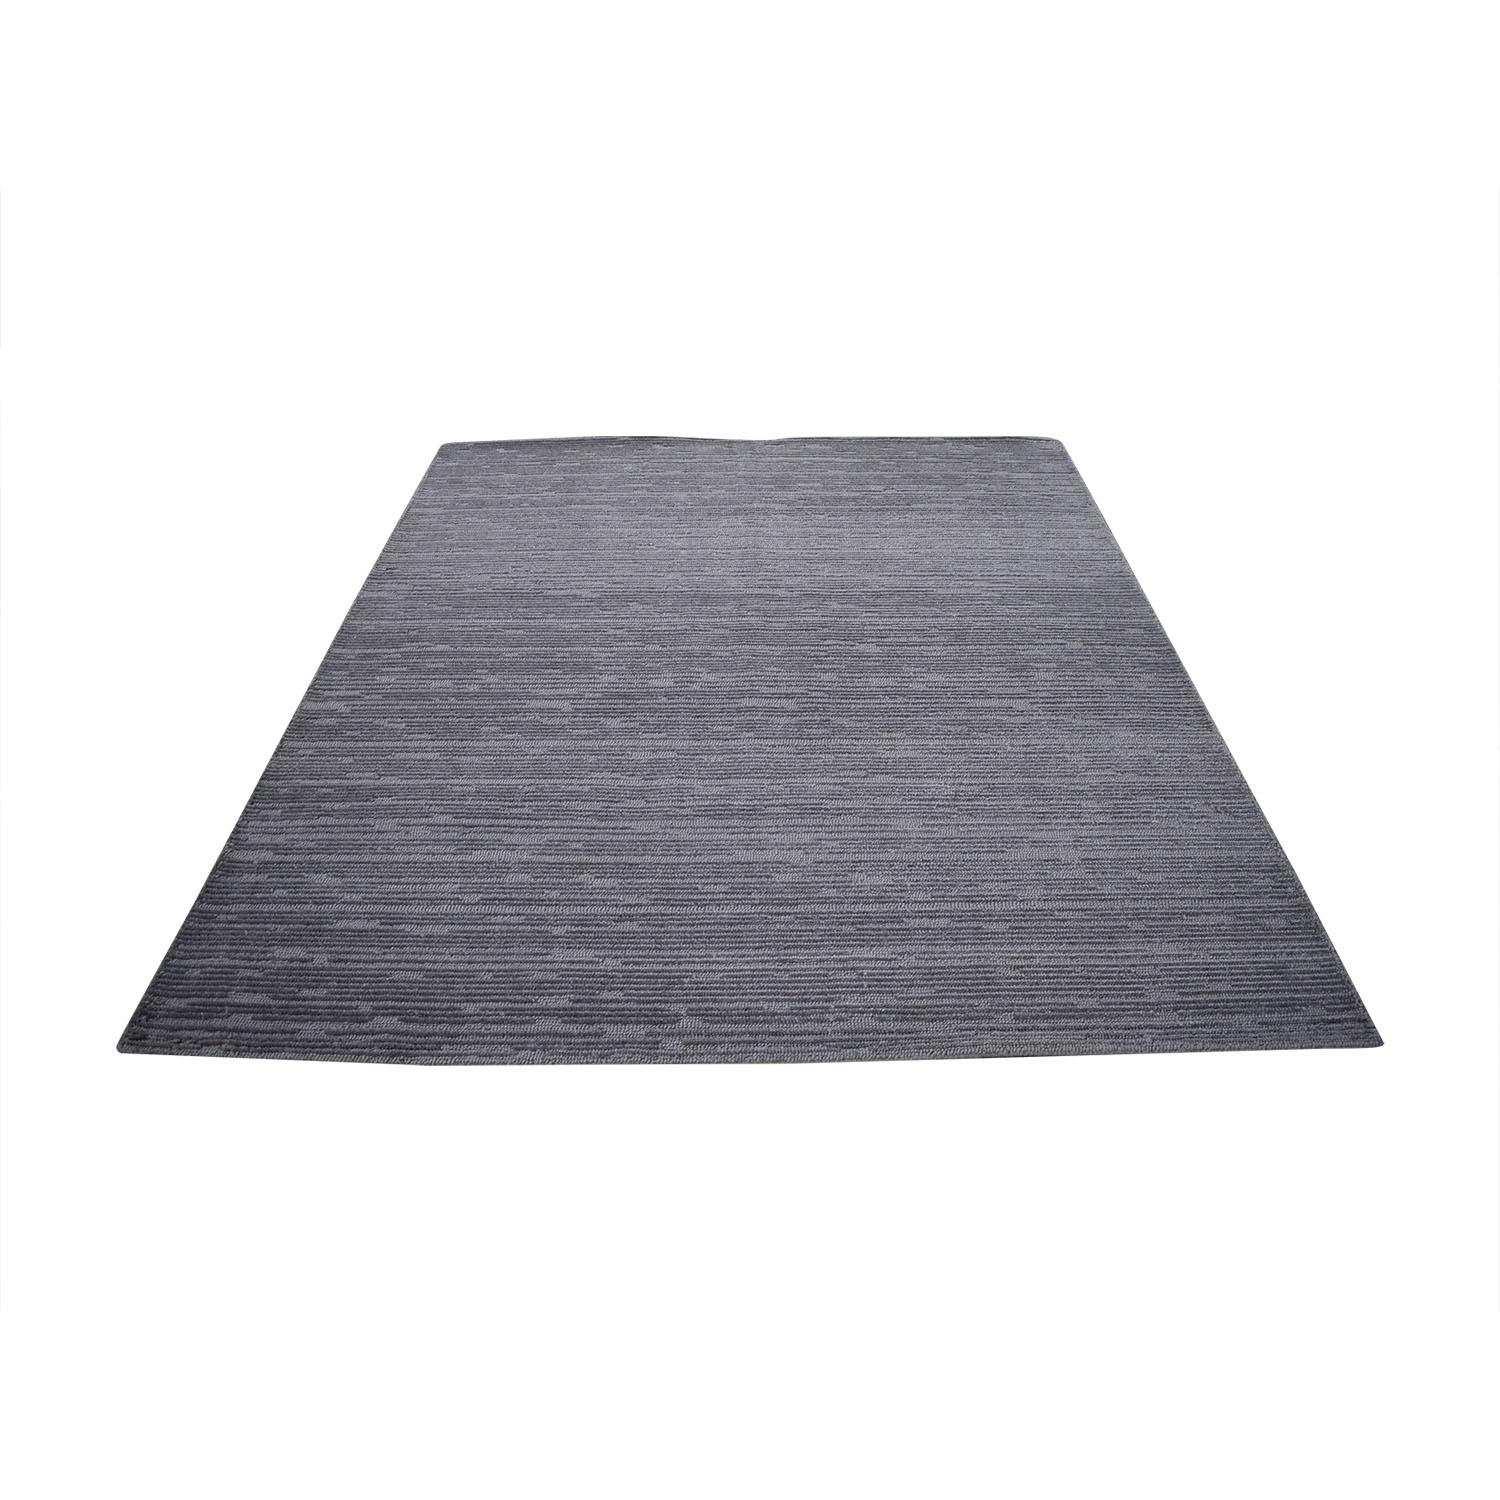 CB2 CB2 Elfen Textured 8X10 Rug for sale